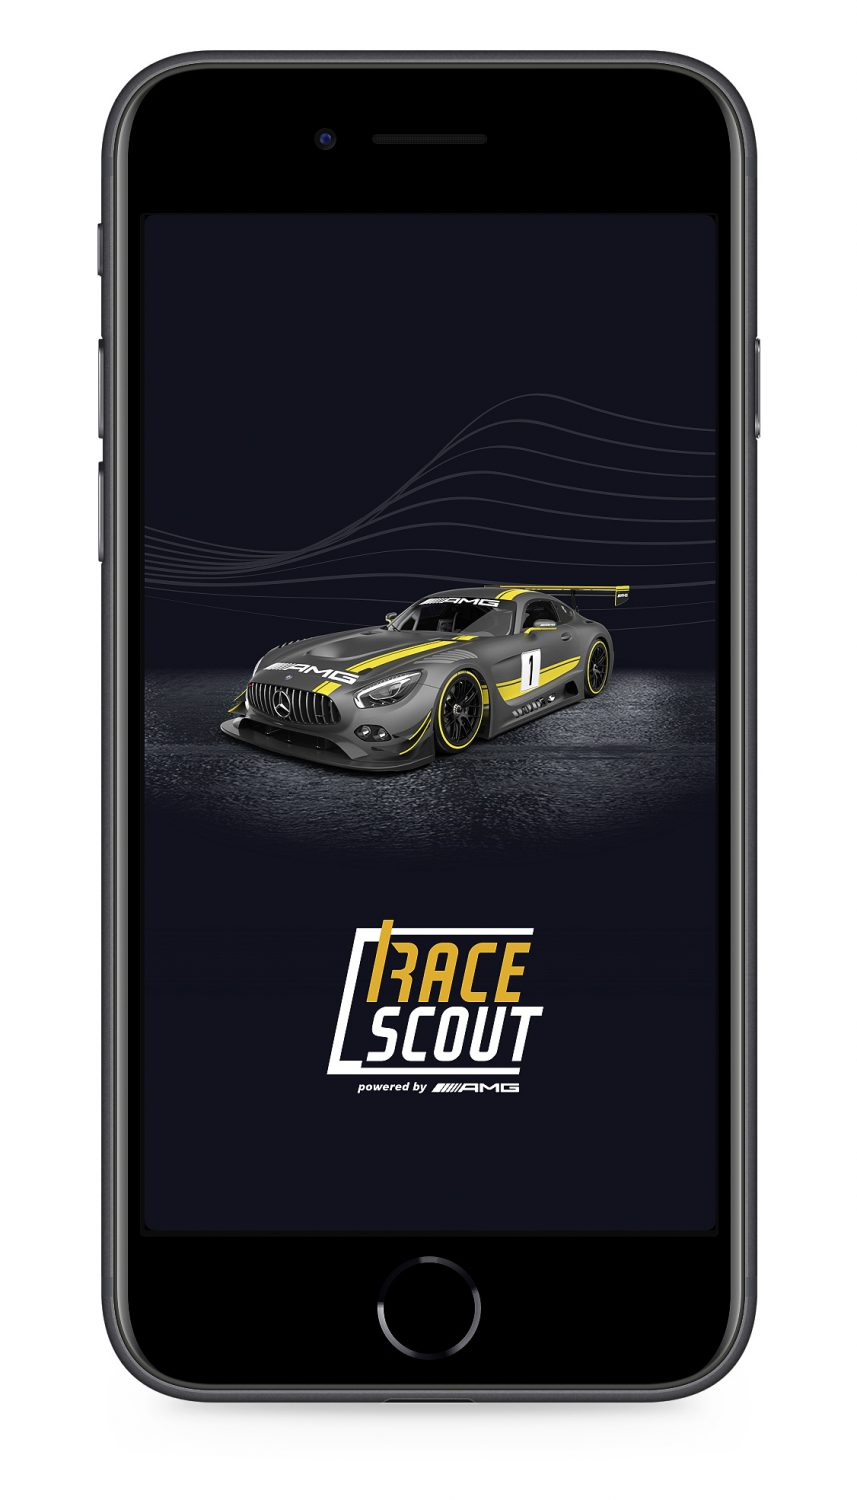 Mercedes AMG RACE Scout